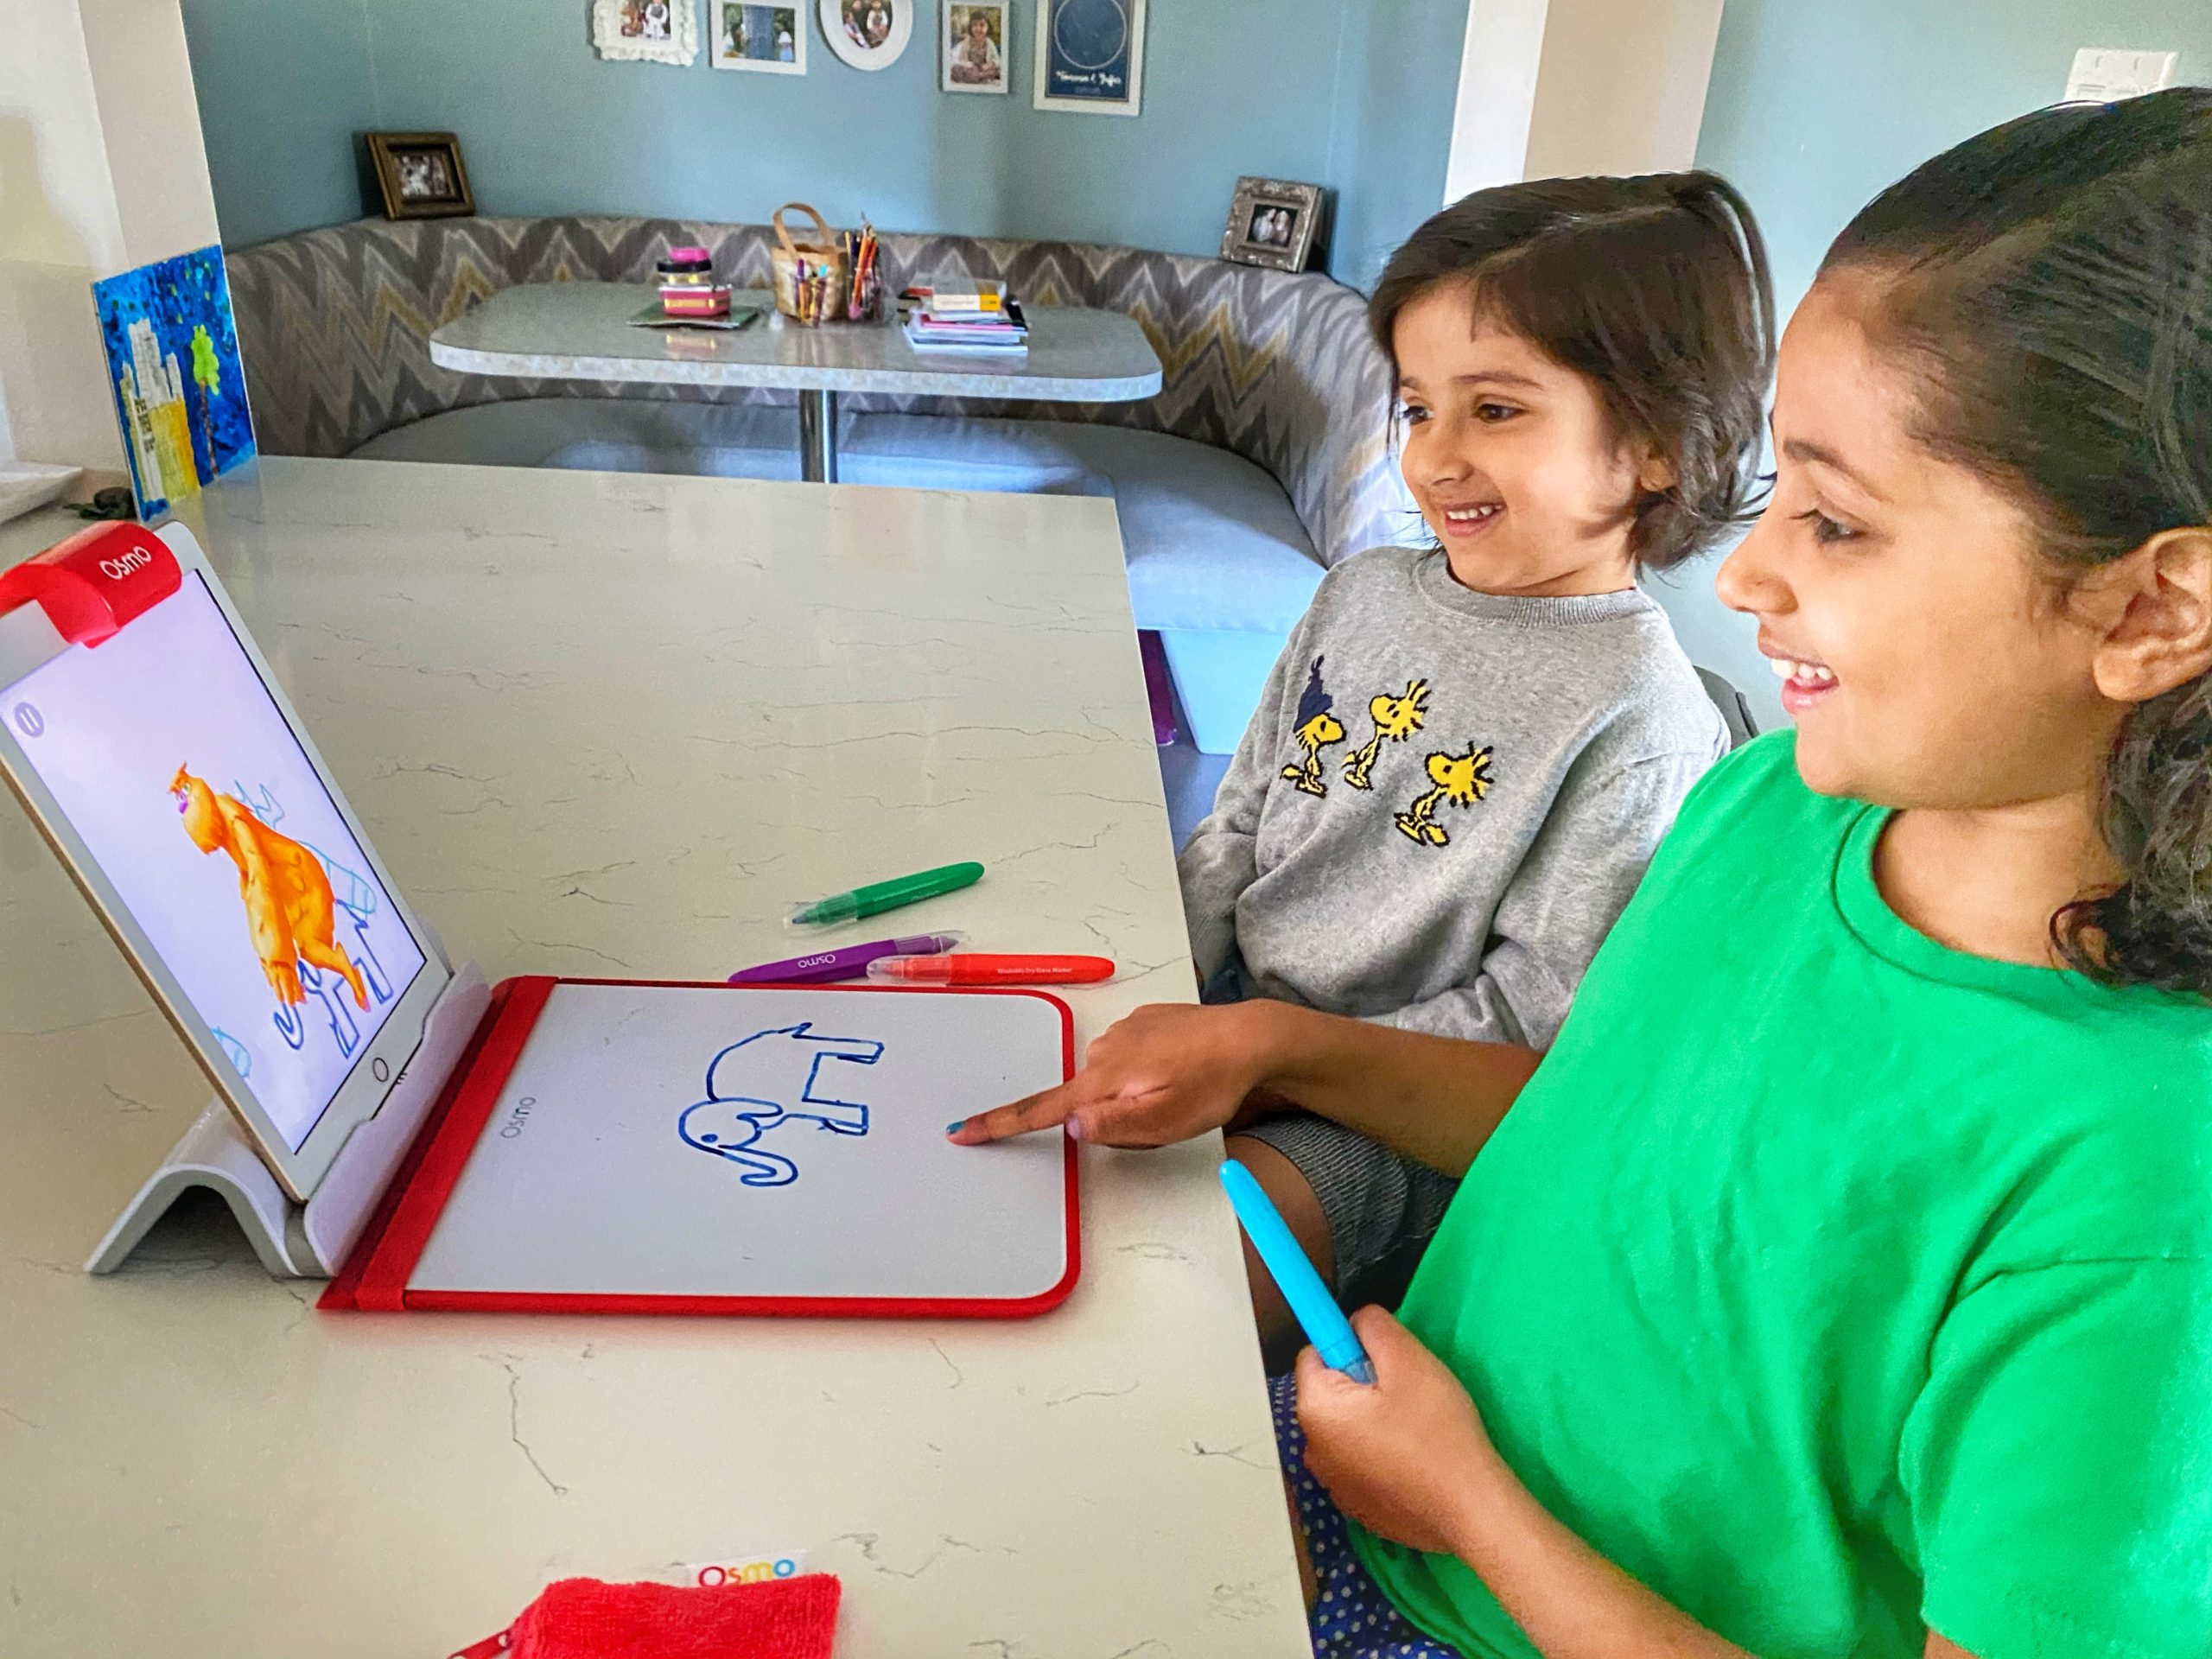 healthy screen time with osmo